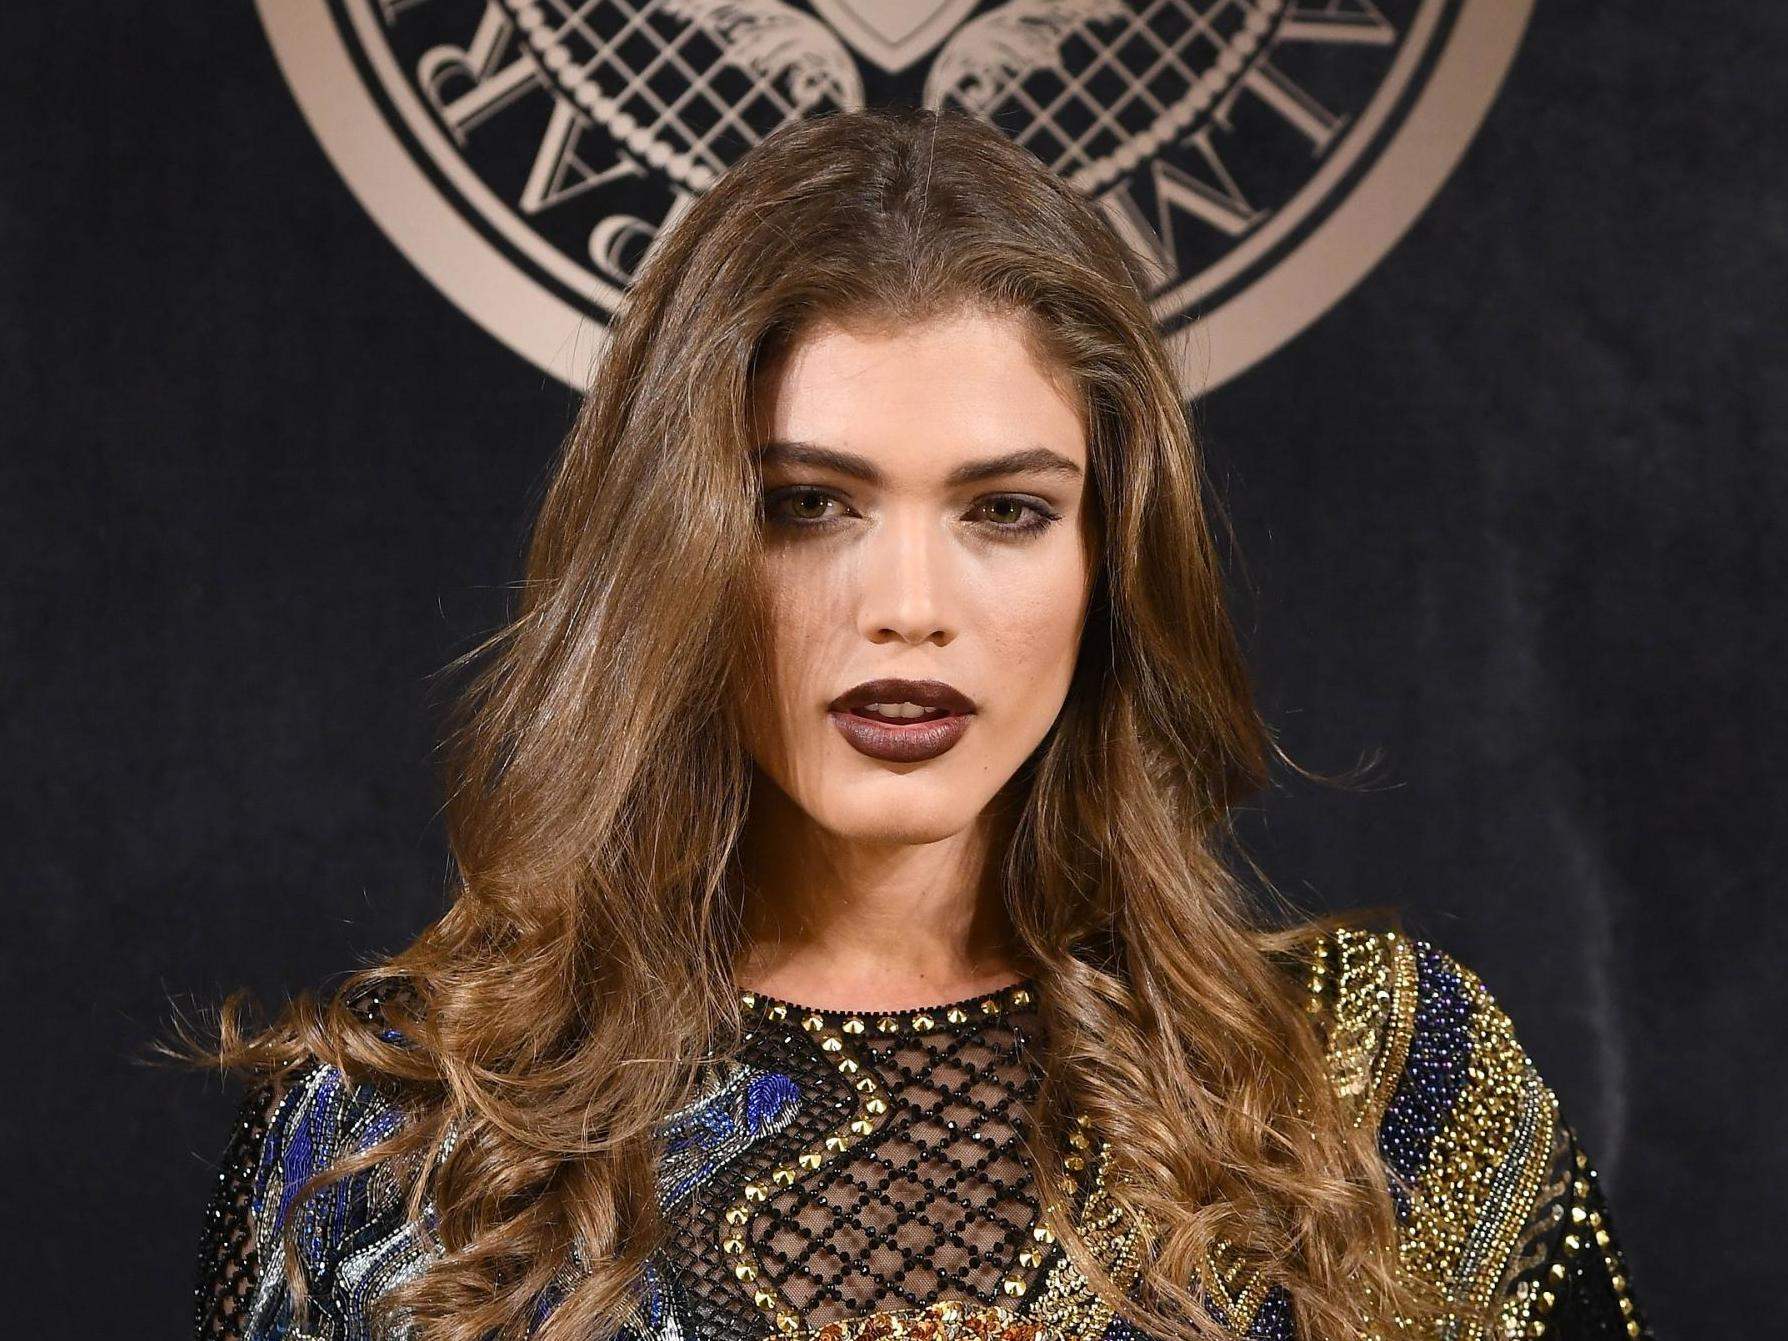 Victoria's Secret reportedly 'hires Valentina Sampaio' as first openly transgender model